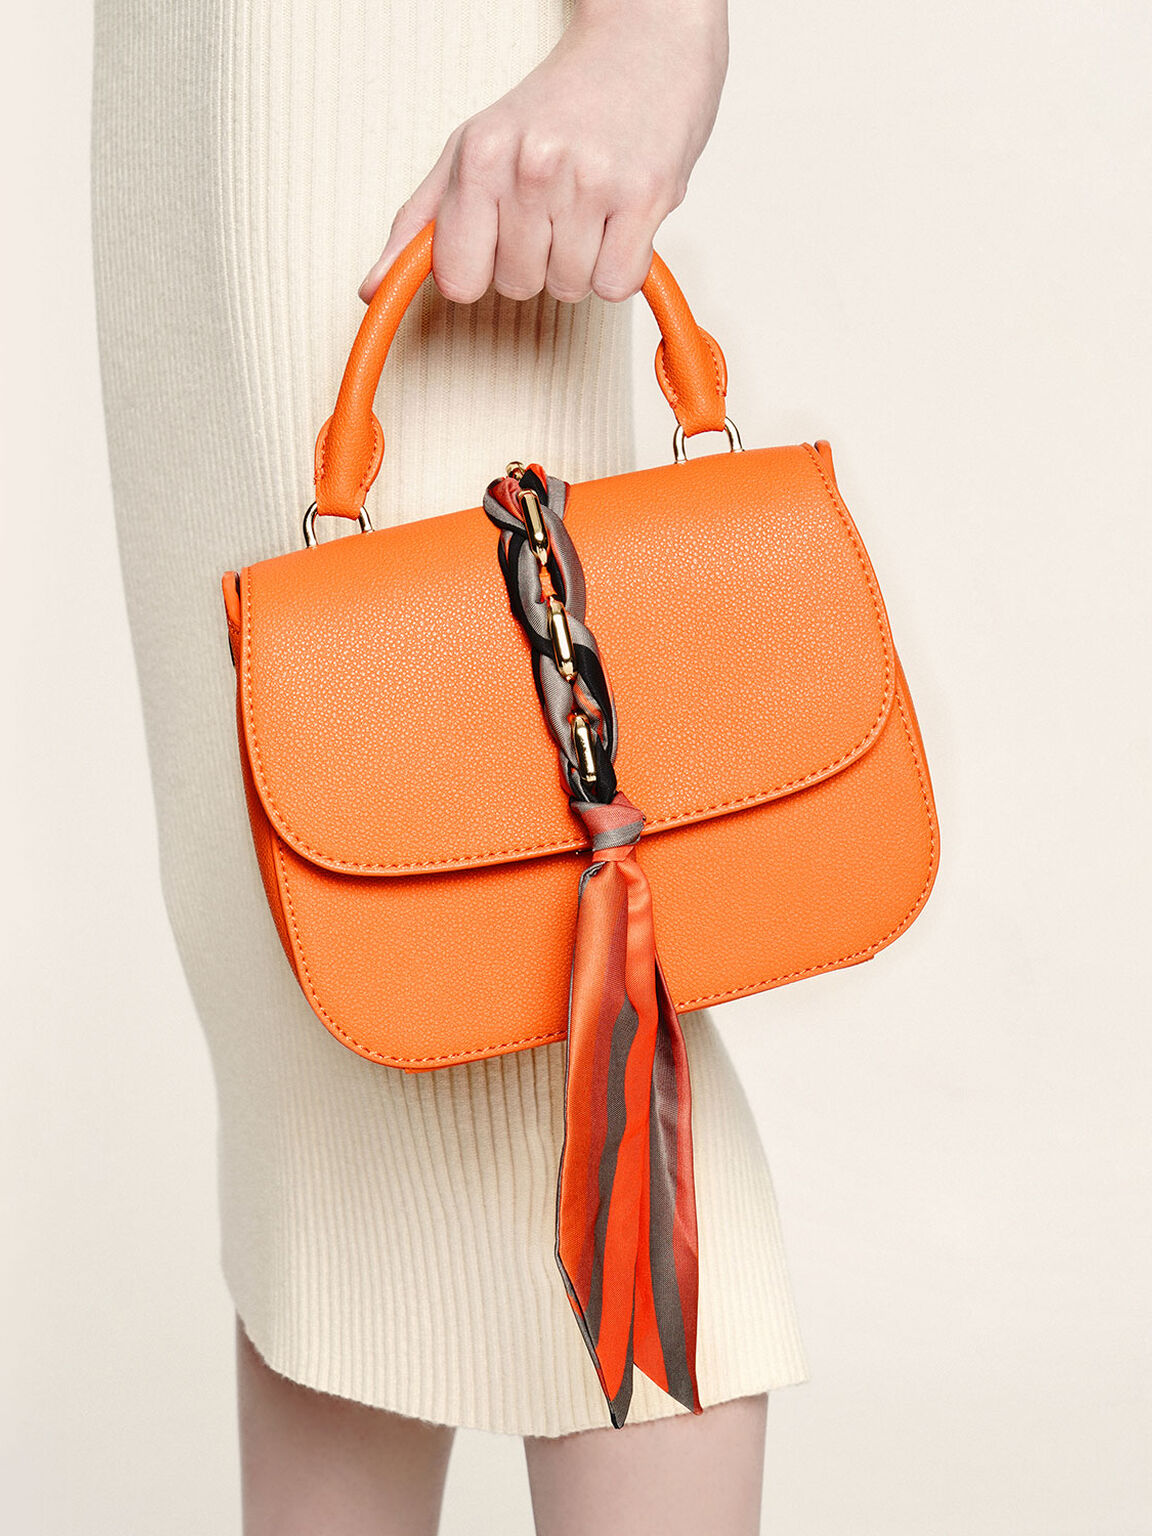 Braided Front Flap Bag, Orange, hi-res